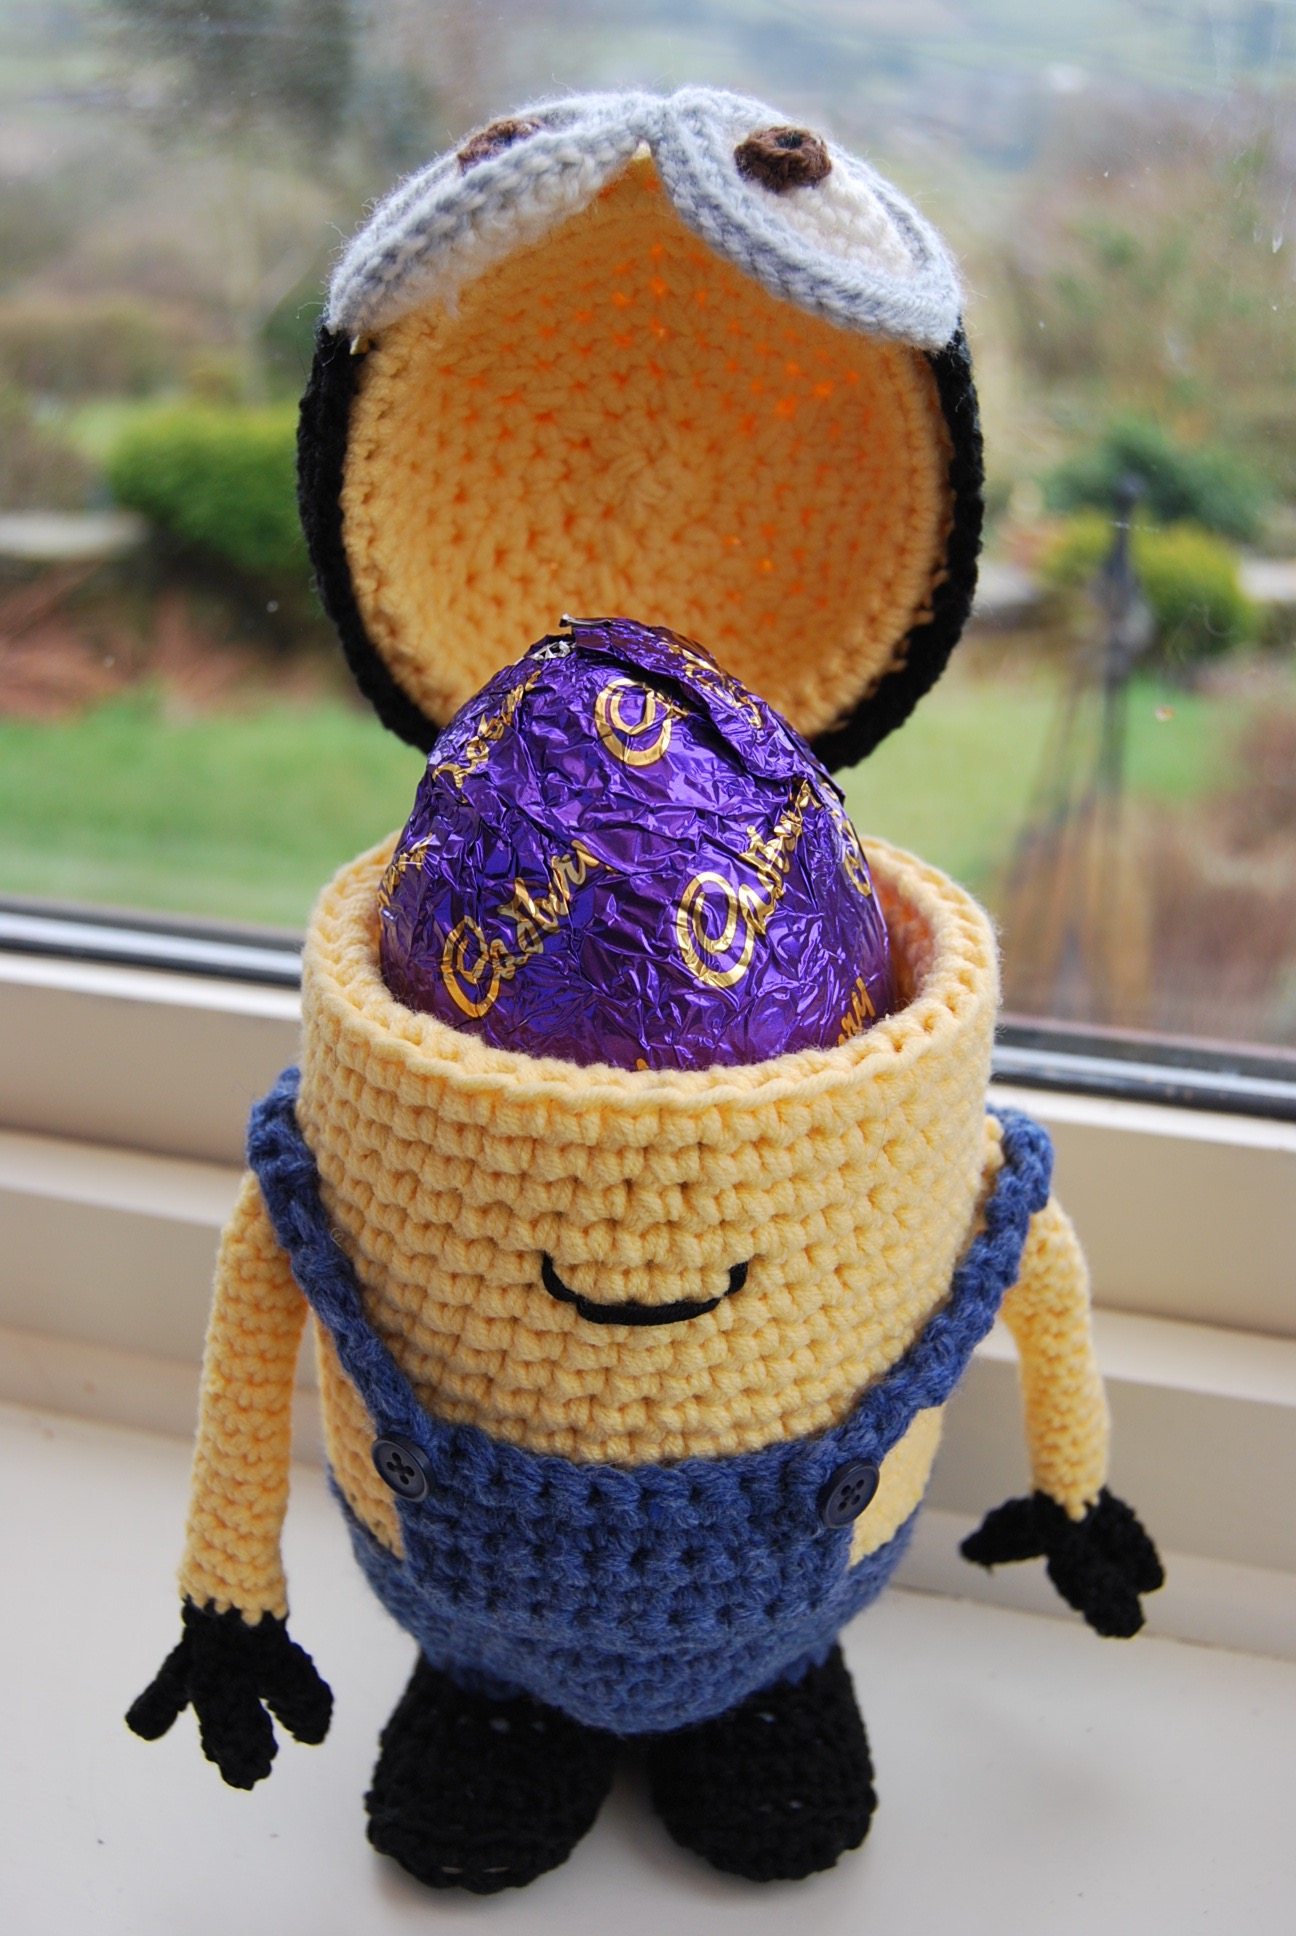 Who\'s hoping for Minions of Easter Eggs?! (Day 1) - Slightly Sheepish